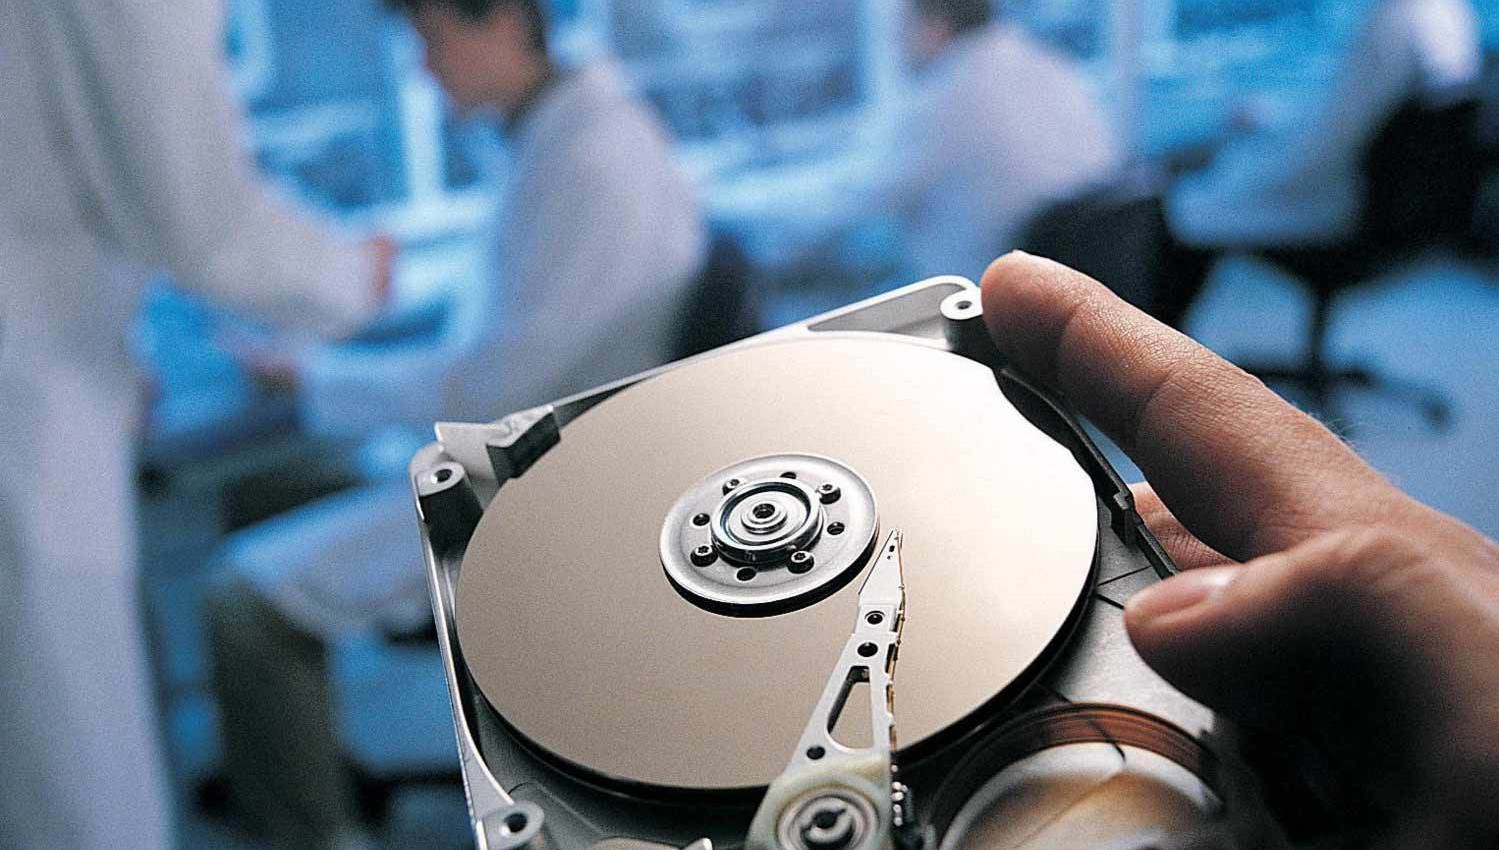 Top 10 Recomandari Hard Disk-uri in 2017